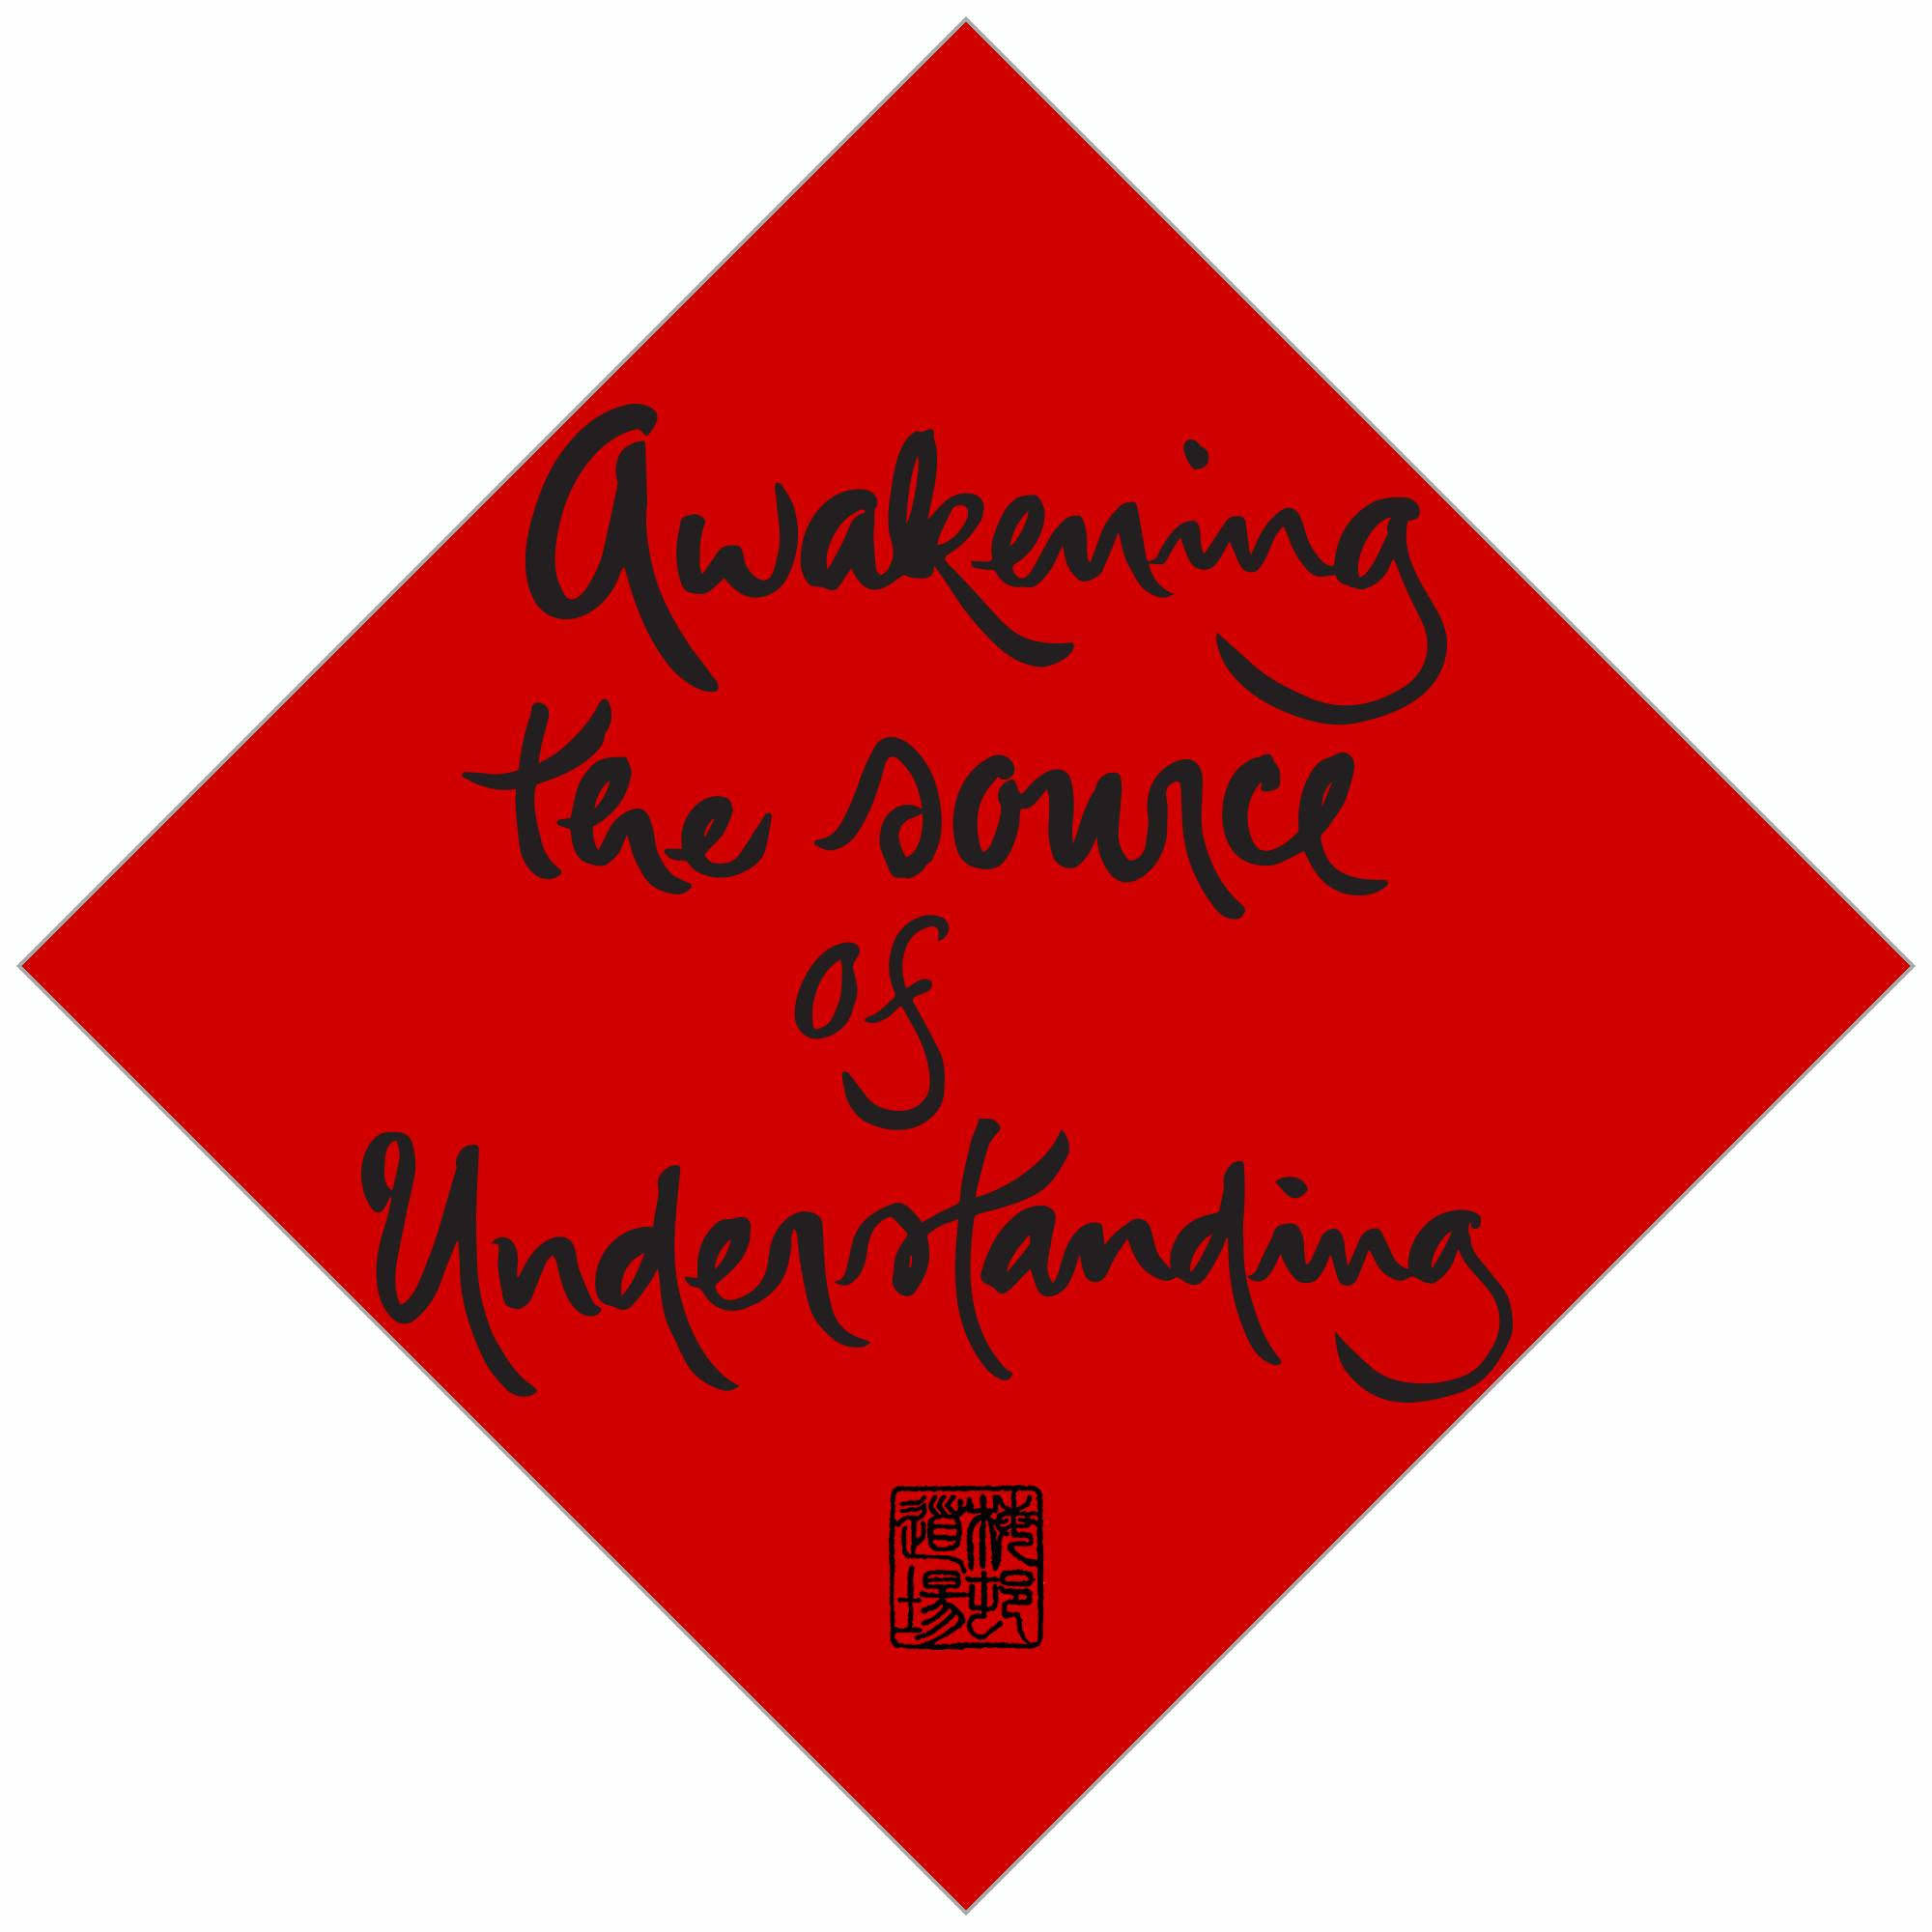 Awakening the Source of Understanding